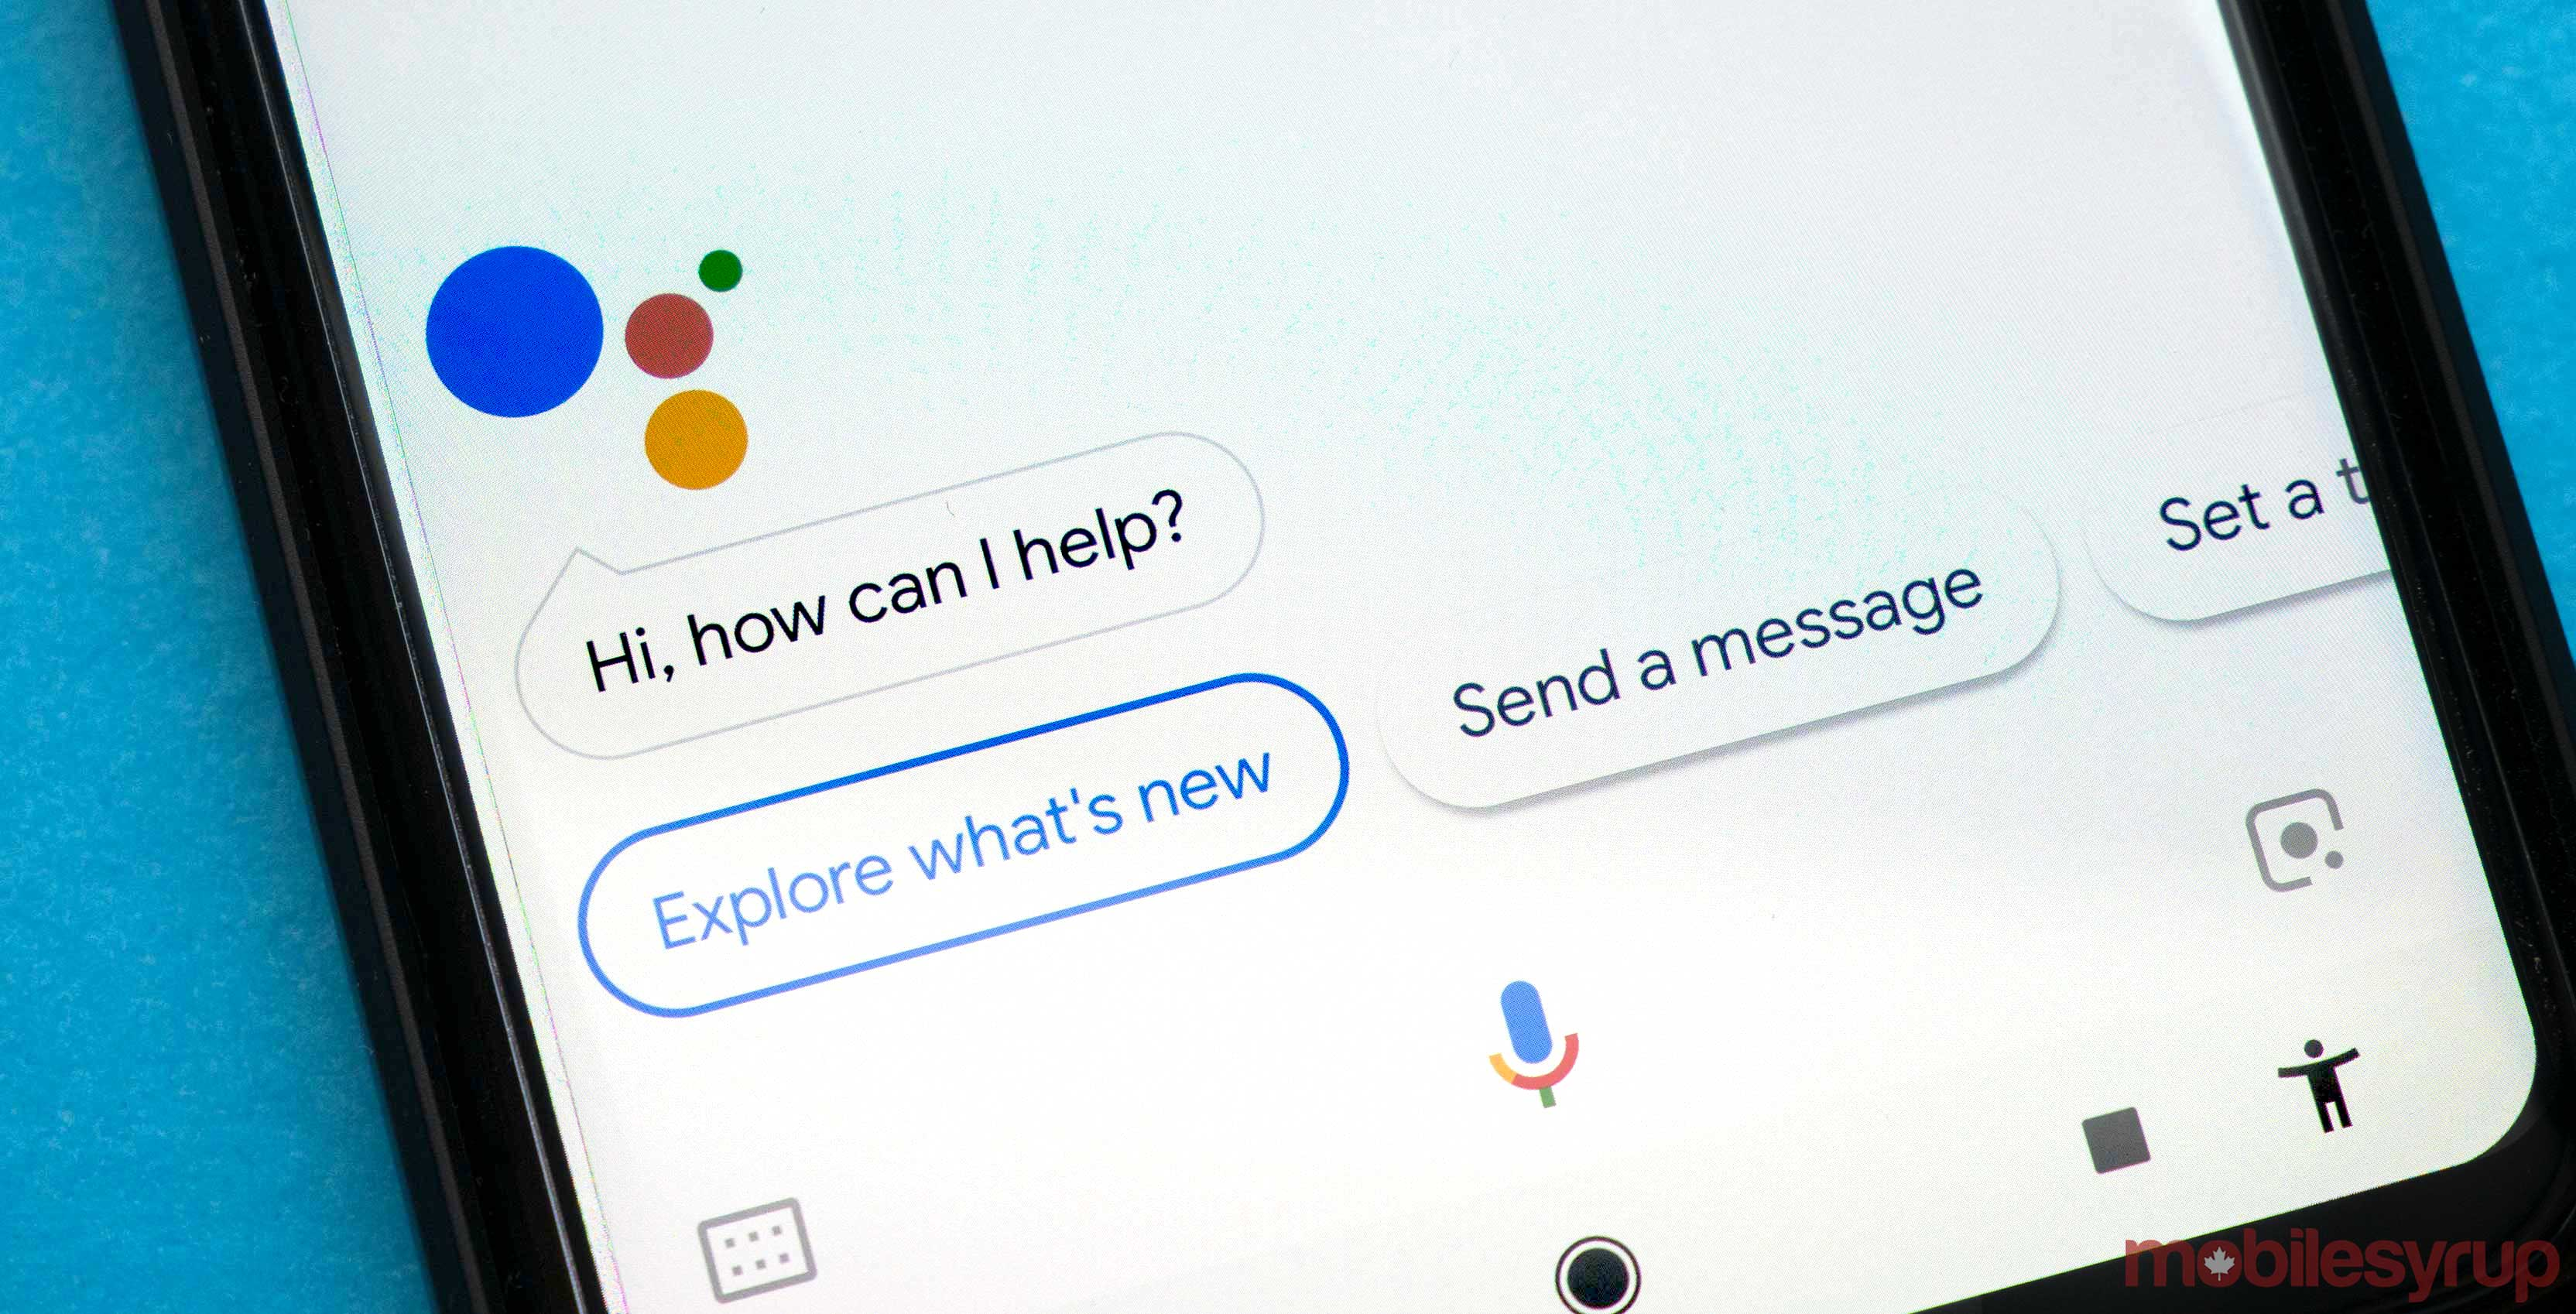 Google Assistant gets dedicated button on new phones, integrates with Messages app